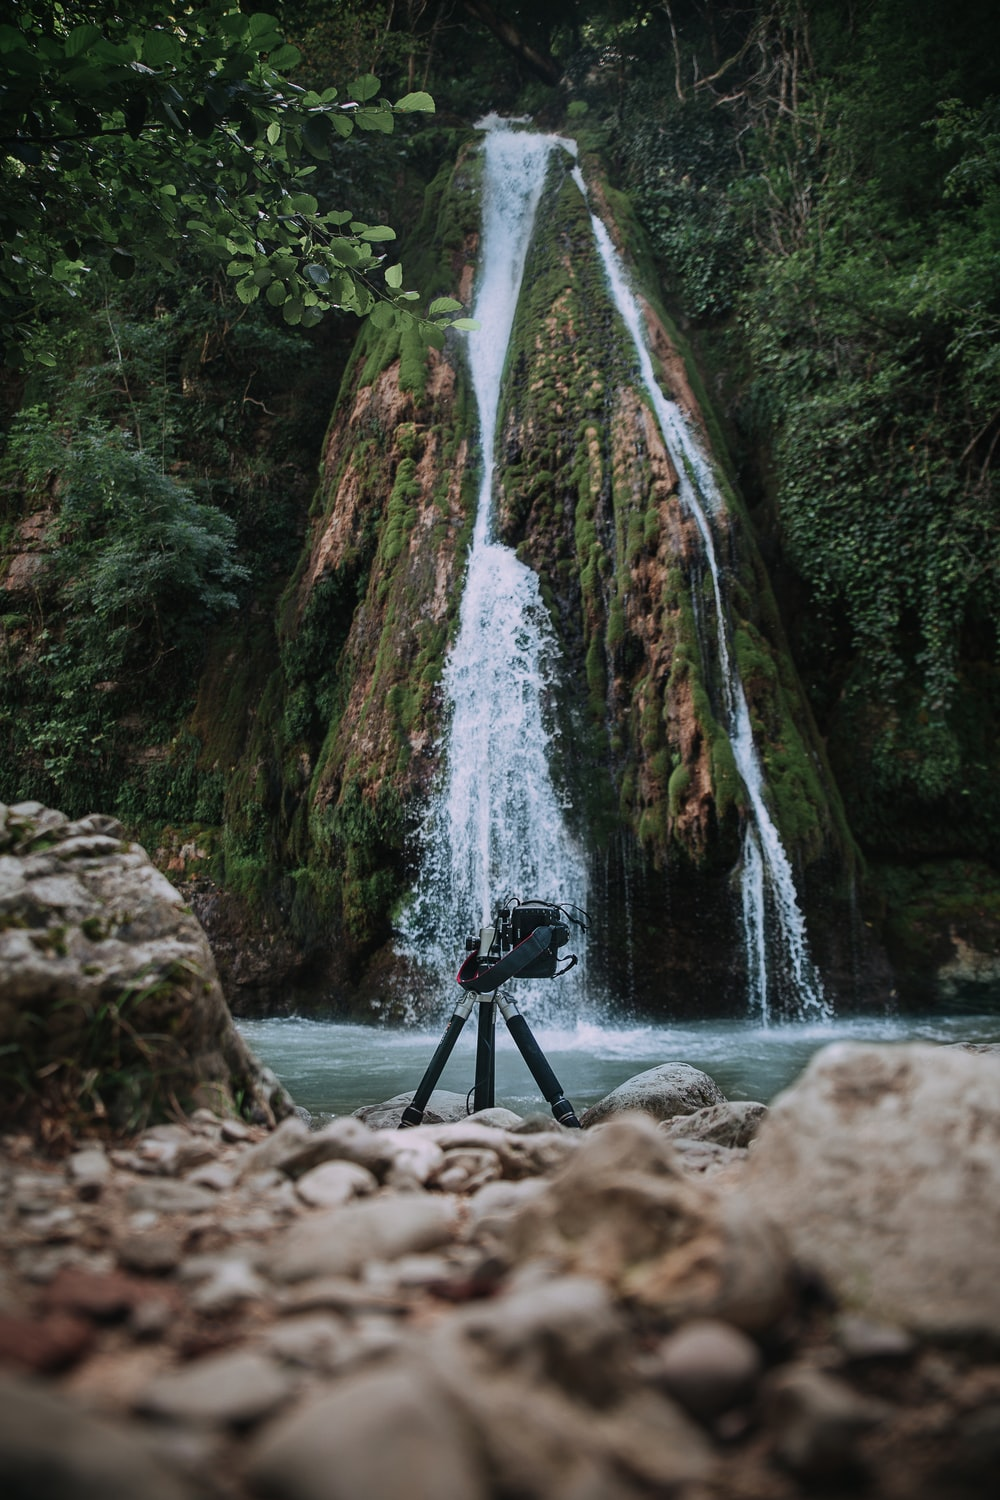 tripod on rocky shore with waterfall background